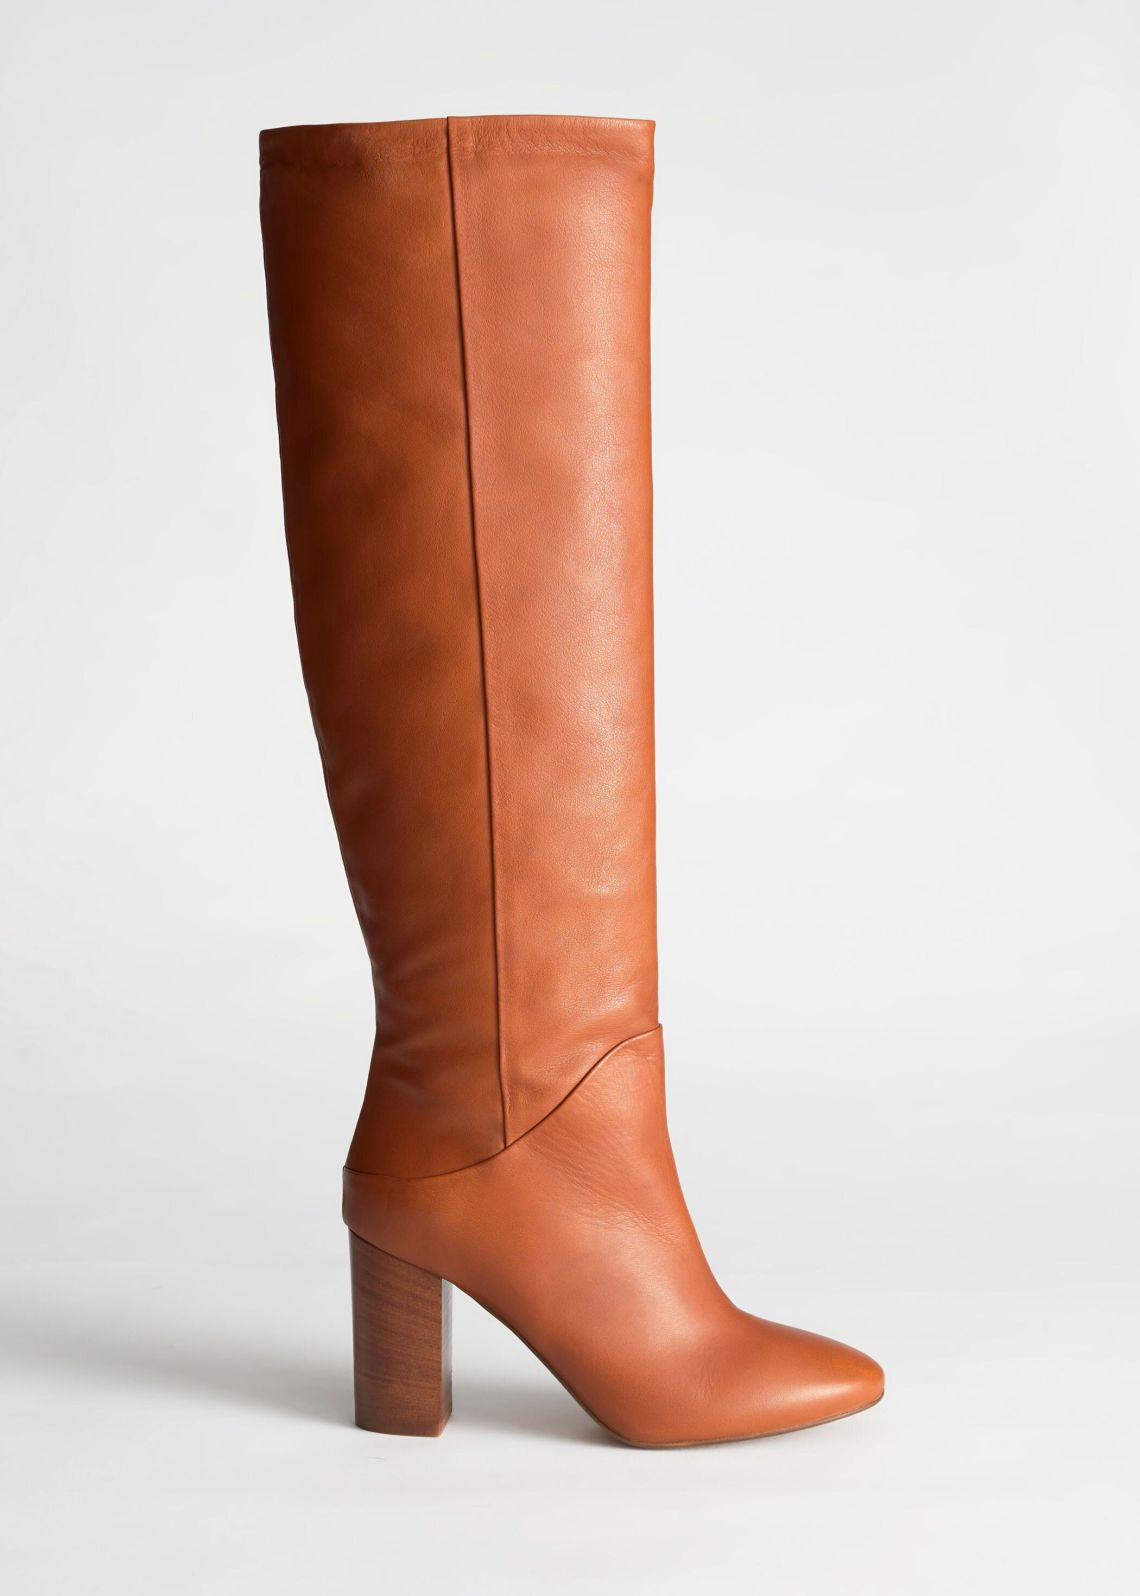 Chrome Free Tanned Leather Knee High Boots, & Other Stories